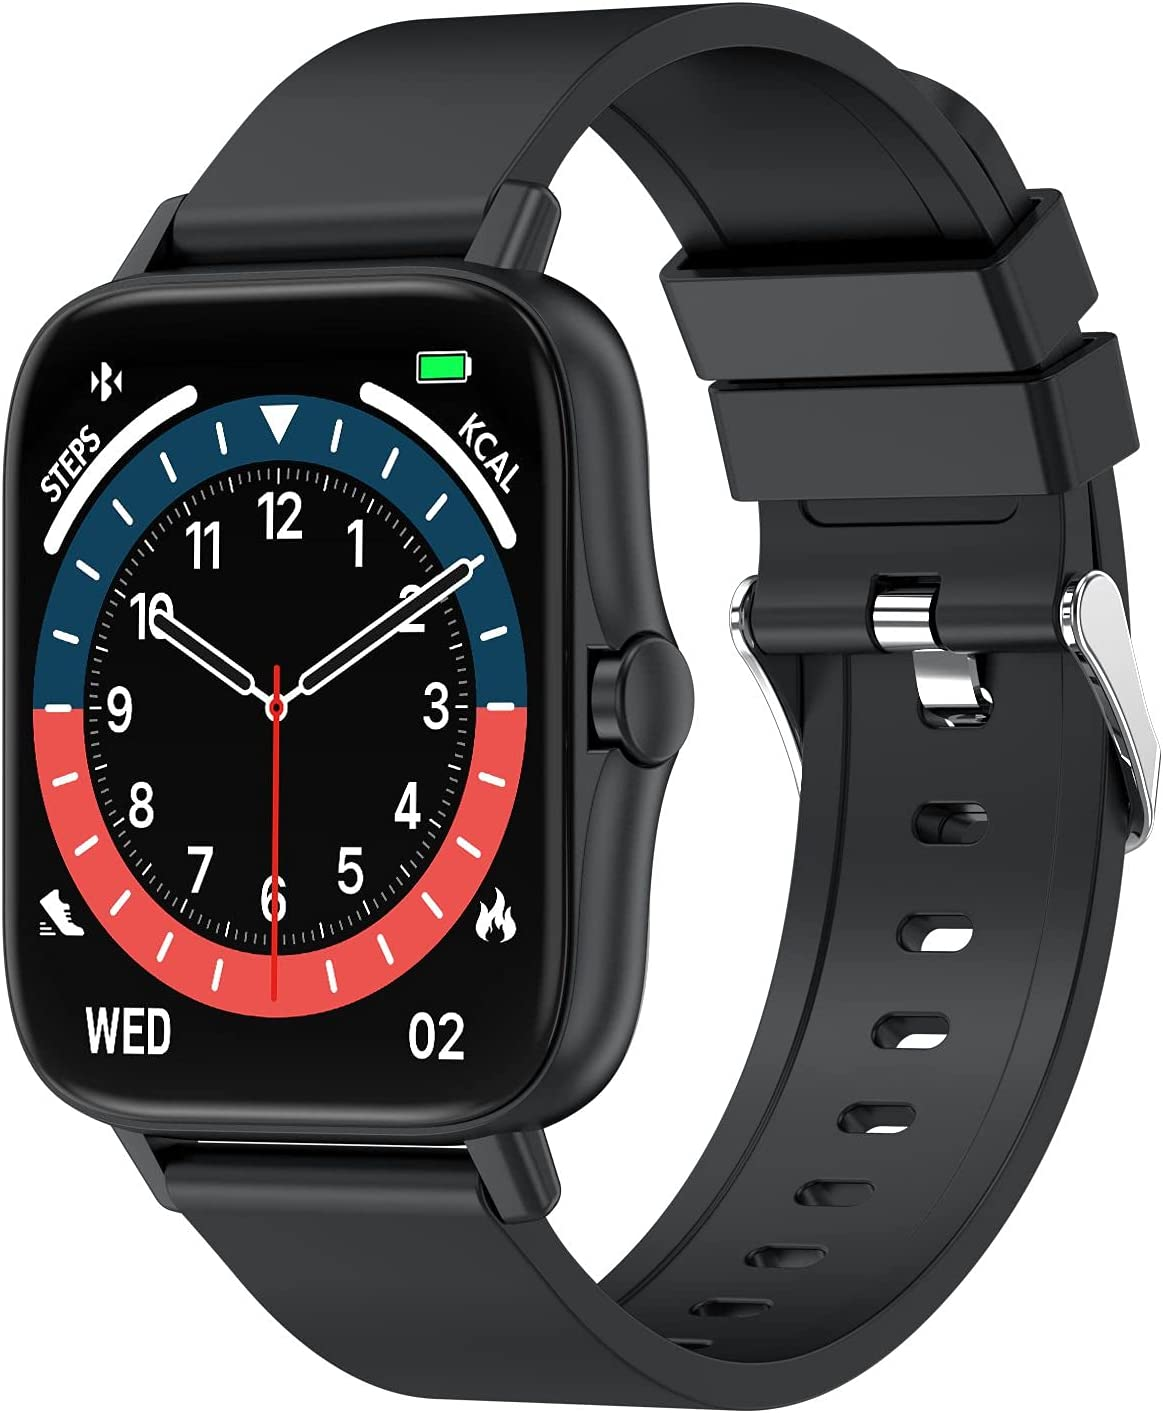 TENNOVO T42 Smart Watch with Bluetooth Pre Blood Call 5 ☆ Safety and trust popular Heart Rate